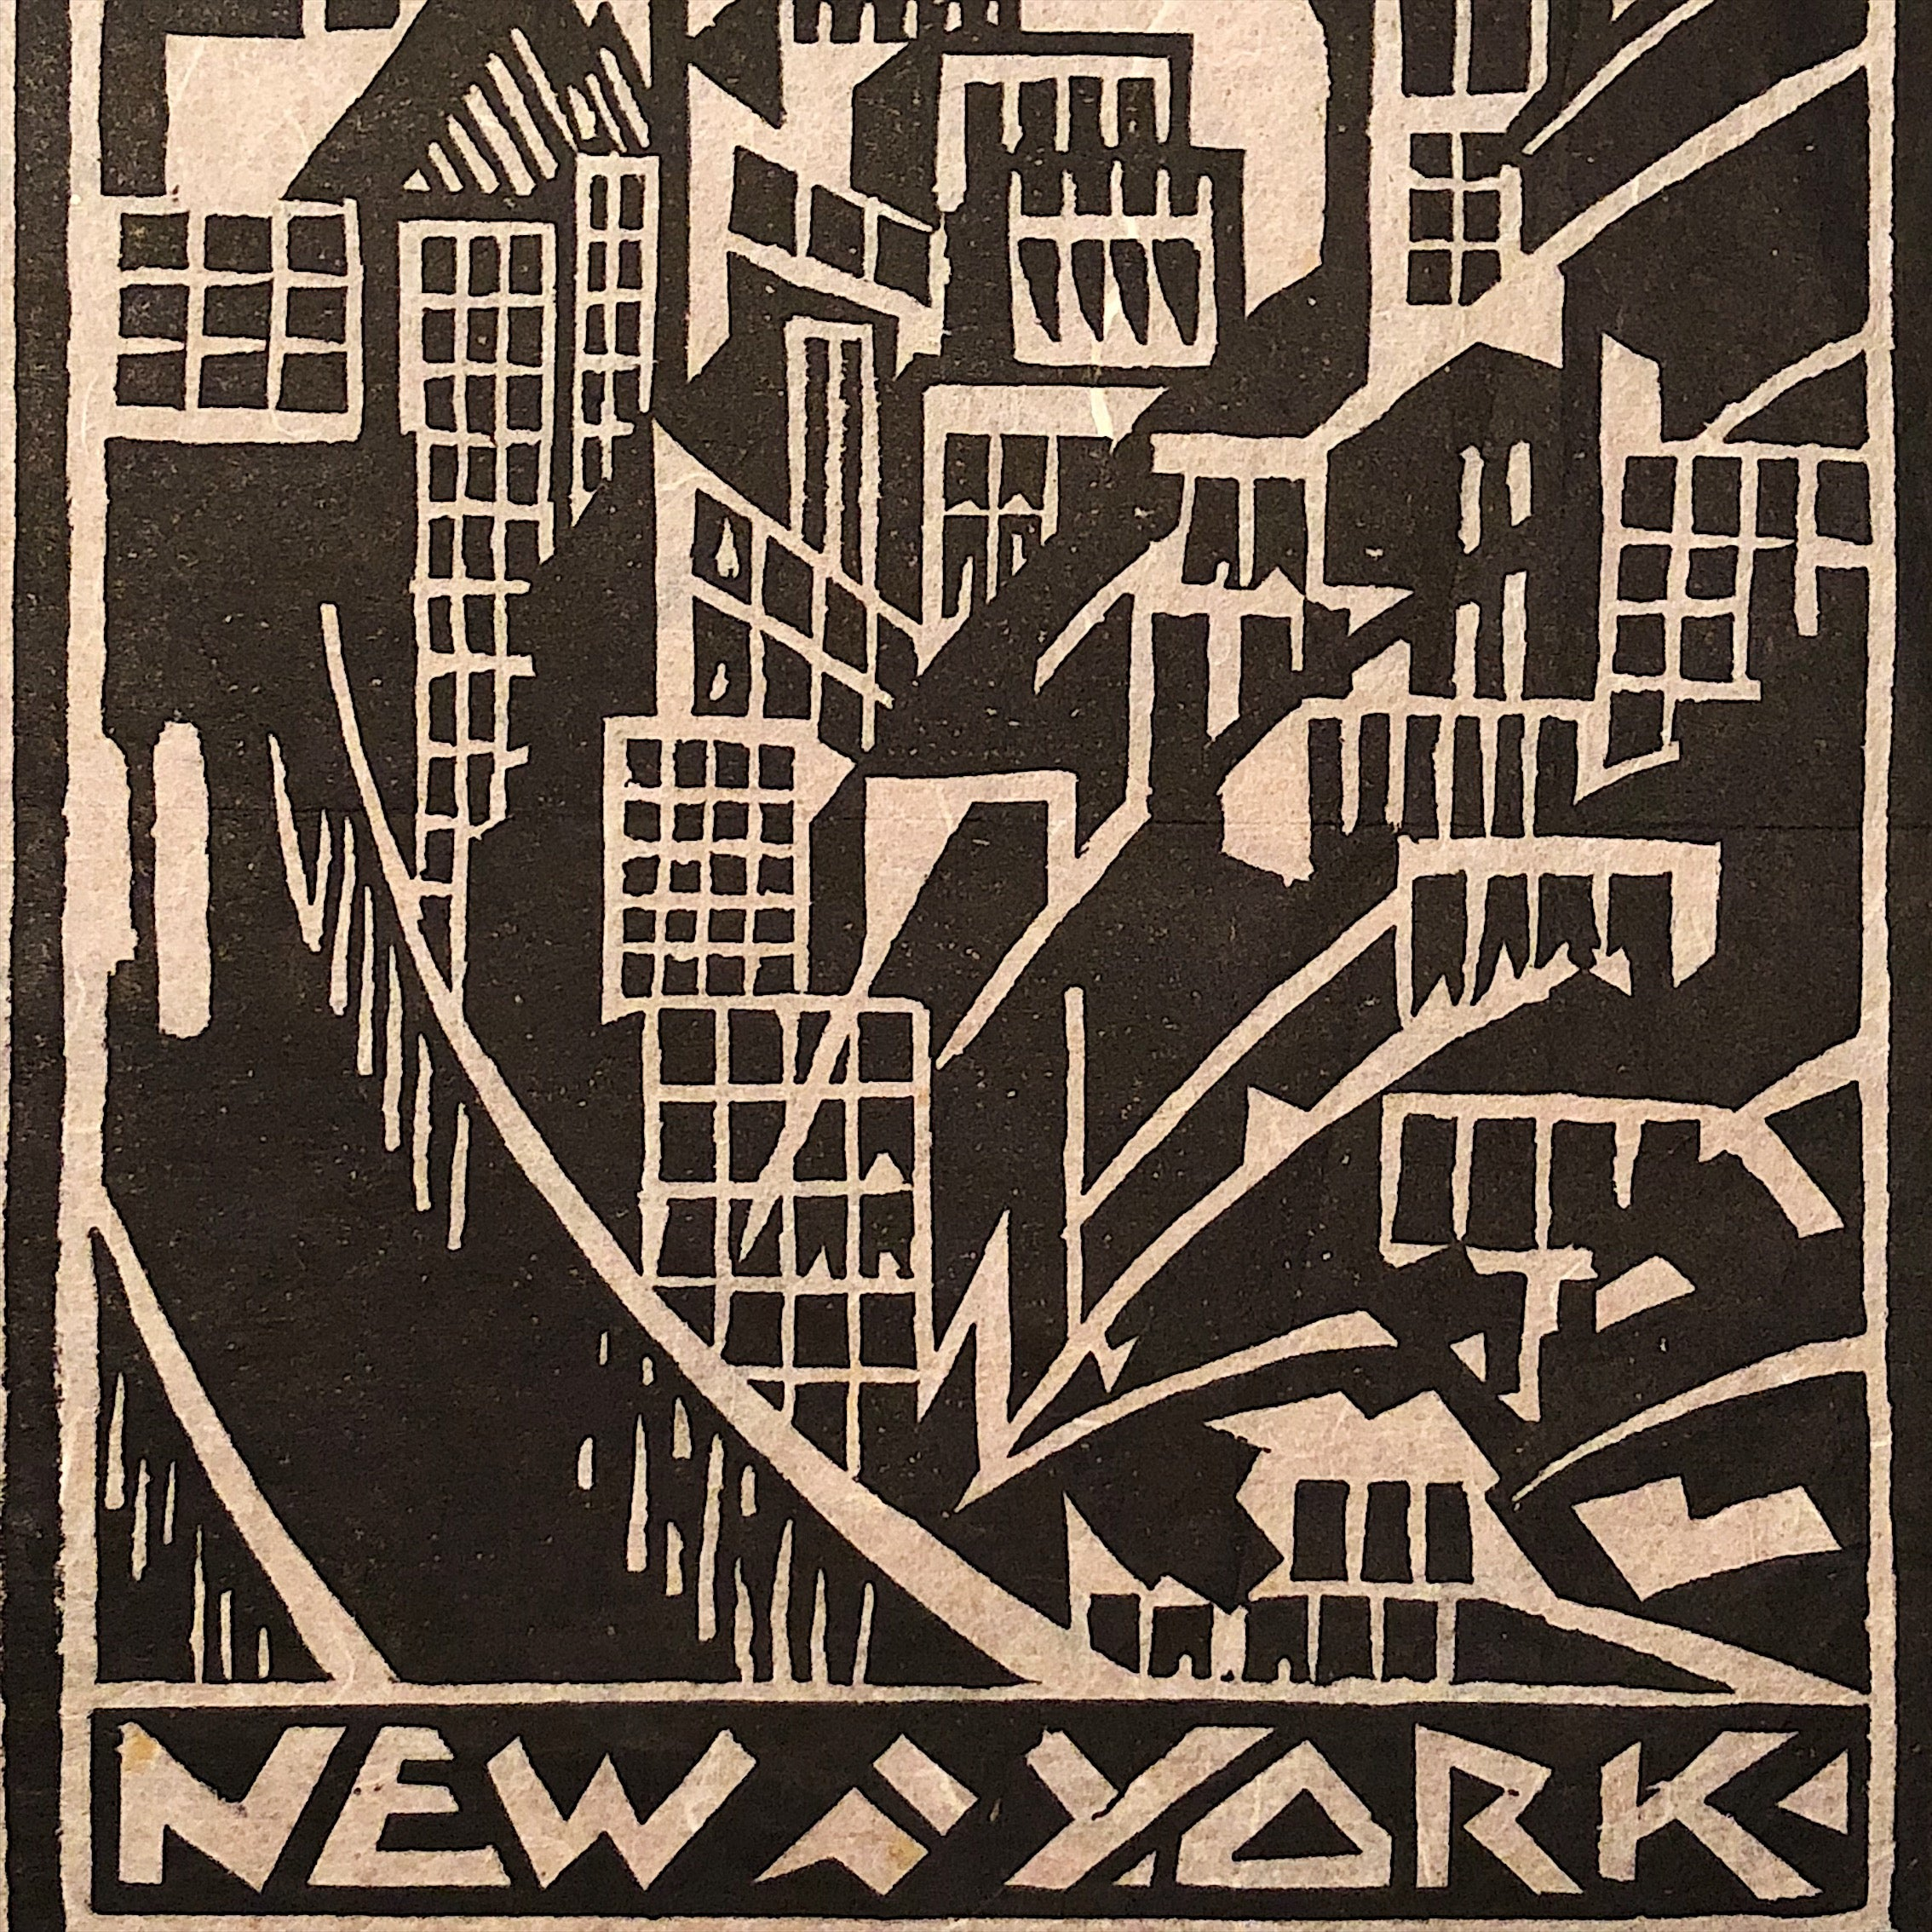 New York City Art Deco Woodcut from 1930s